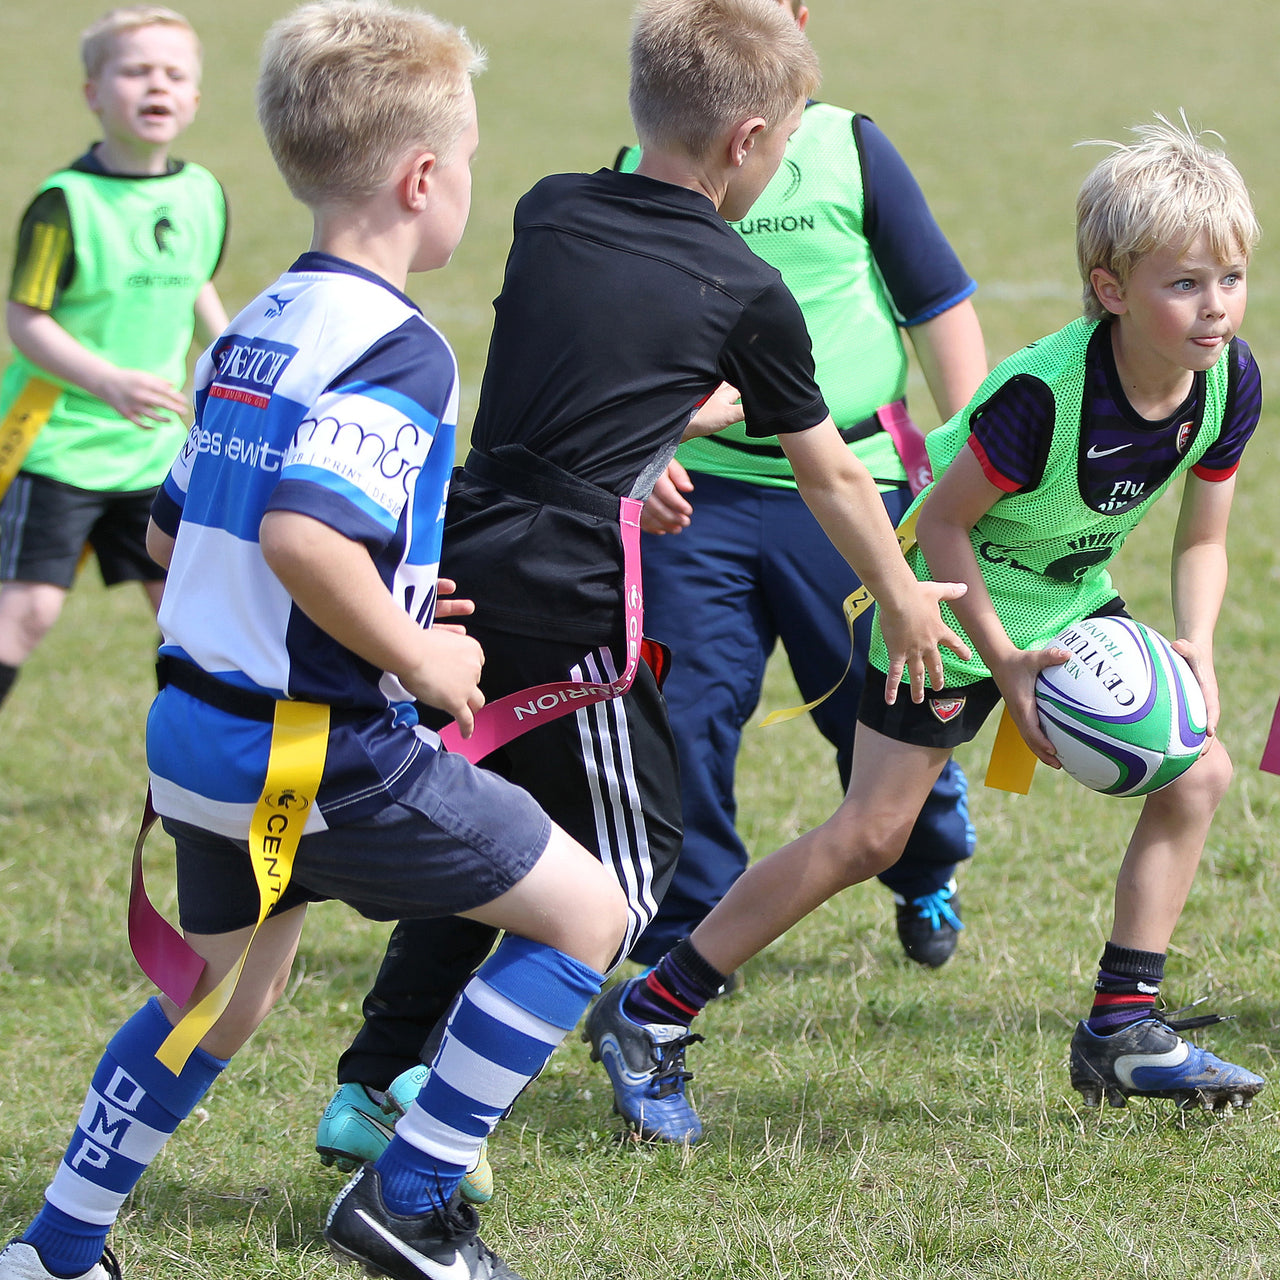 9 benefits to Tag Rugby